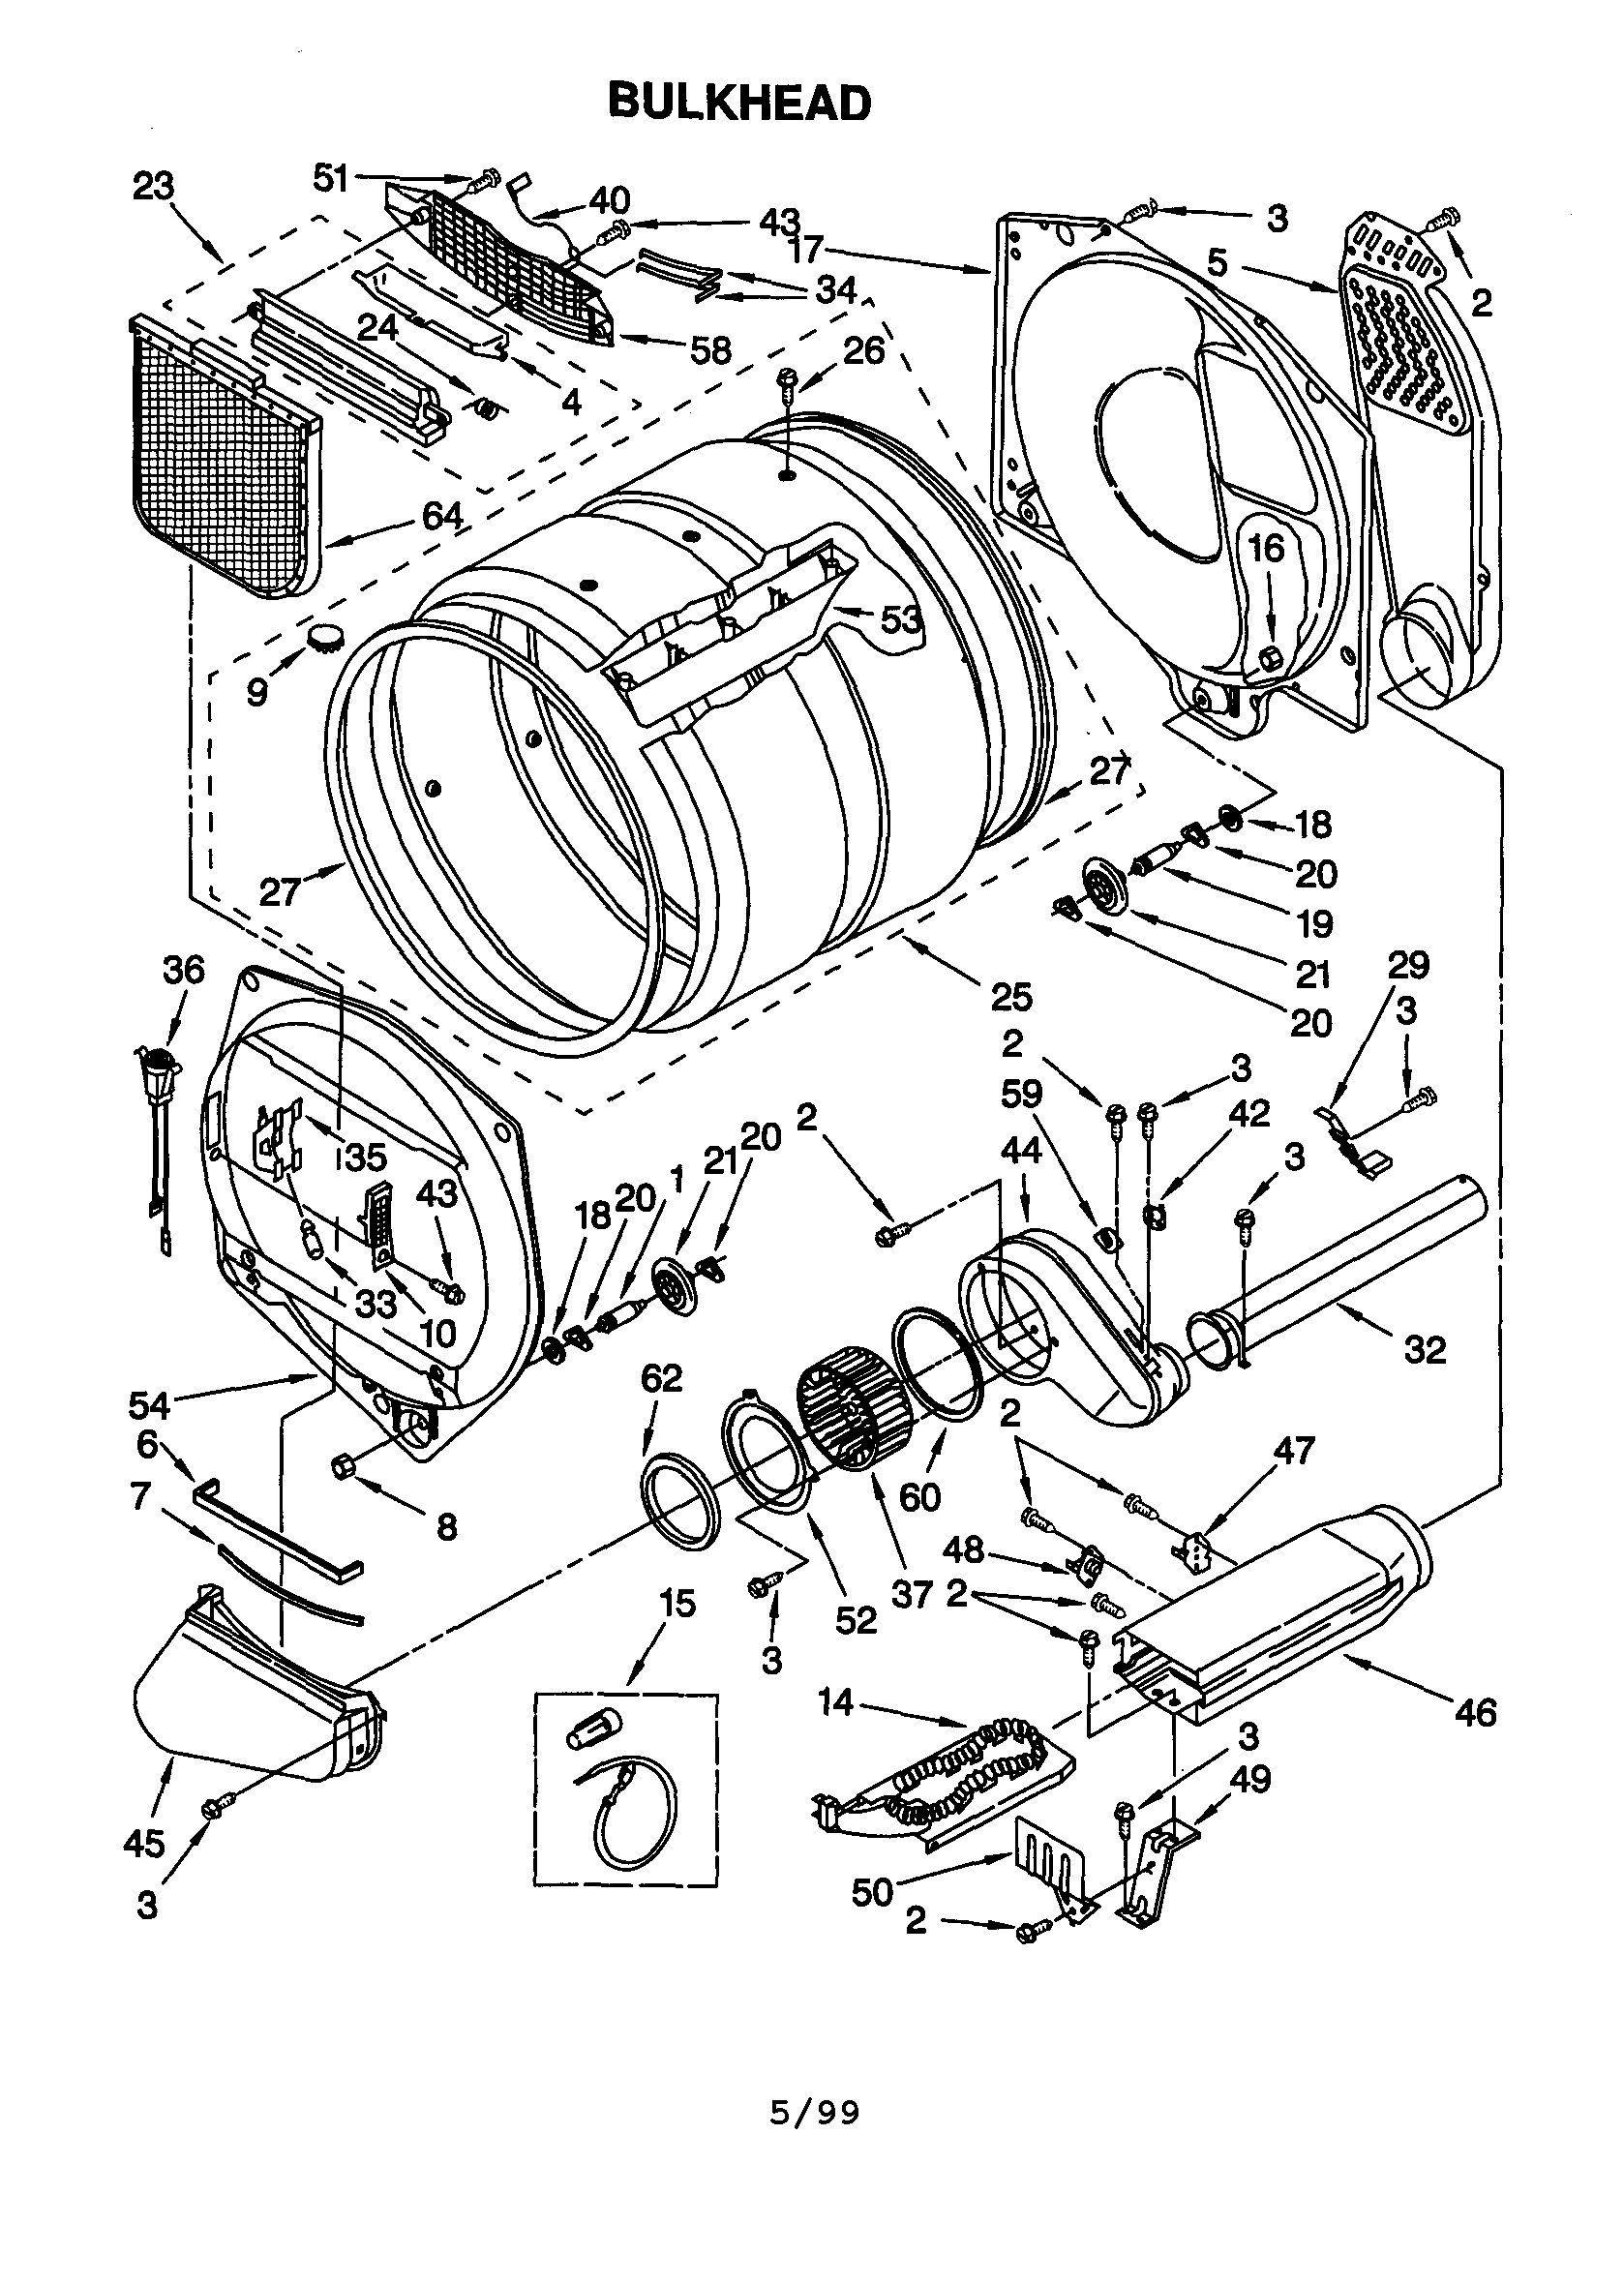 Kenmore 80 series dryer diagram tools kenmore dryer diagram wiring diagrams schematics rh nestorgarcia co kenmore 80 series dryer belt diagram kenmore 80 series dryer repair video asfbconference2016 Image collections